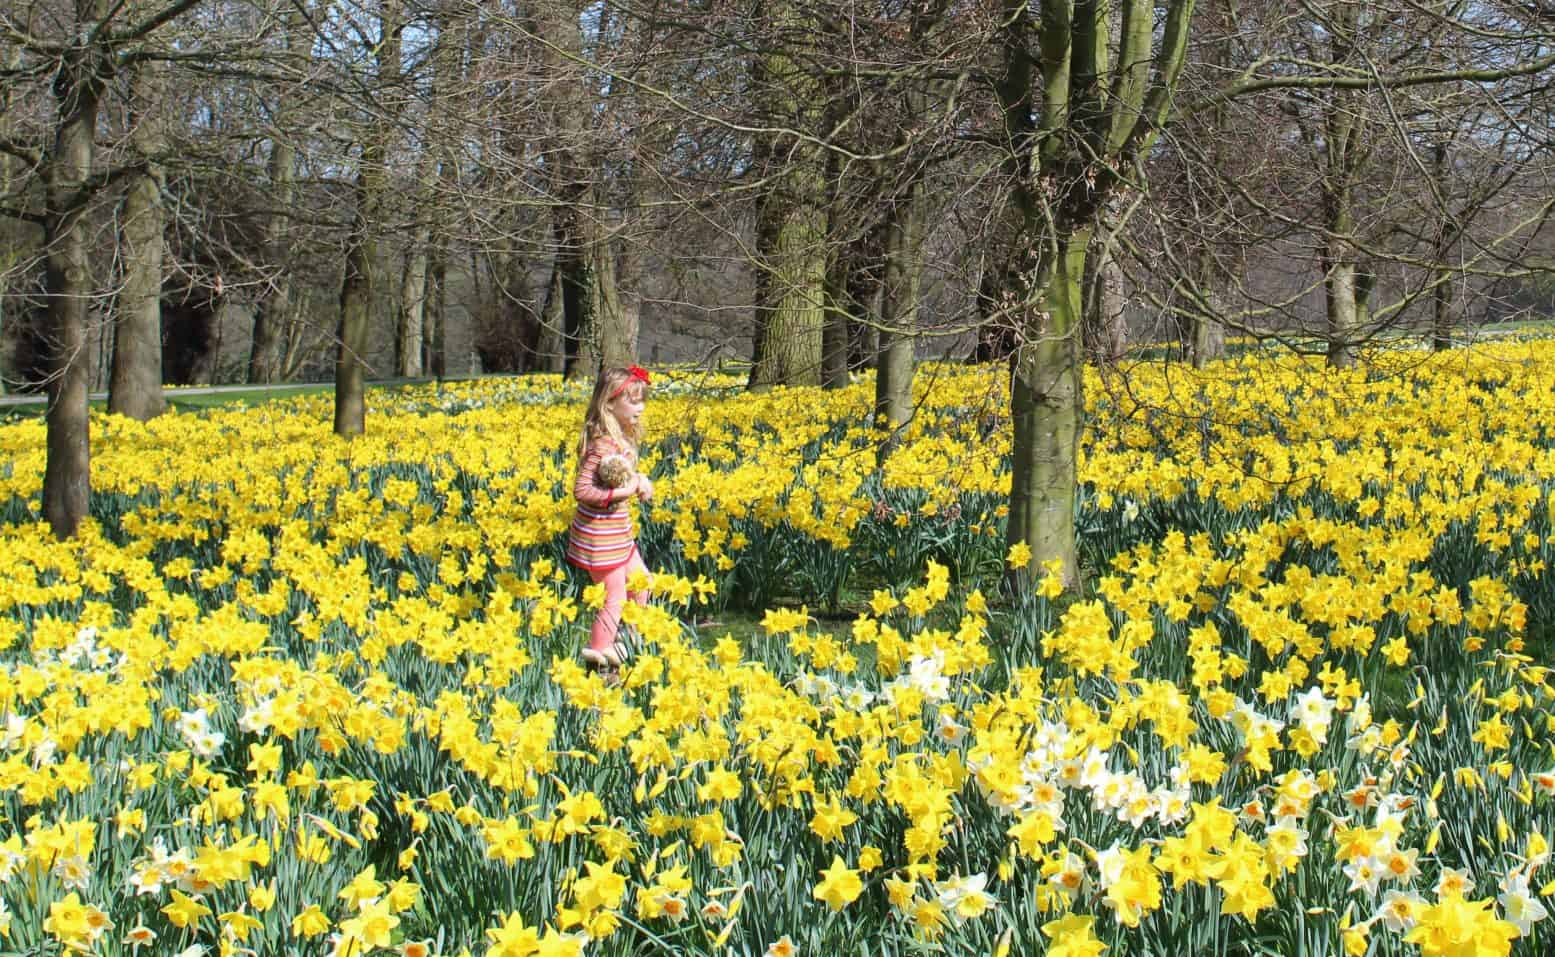 Family Days out in Yorkshire with the Kids – 30+ Ideas!